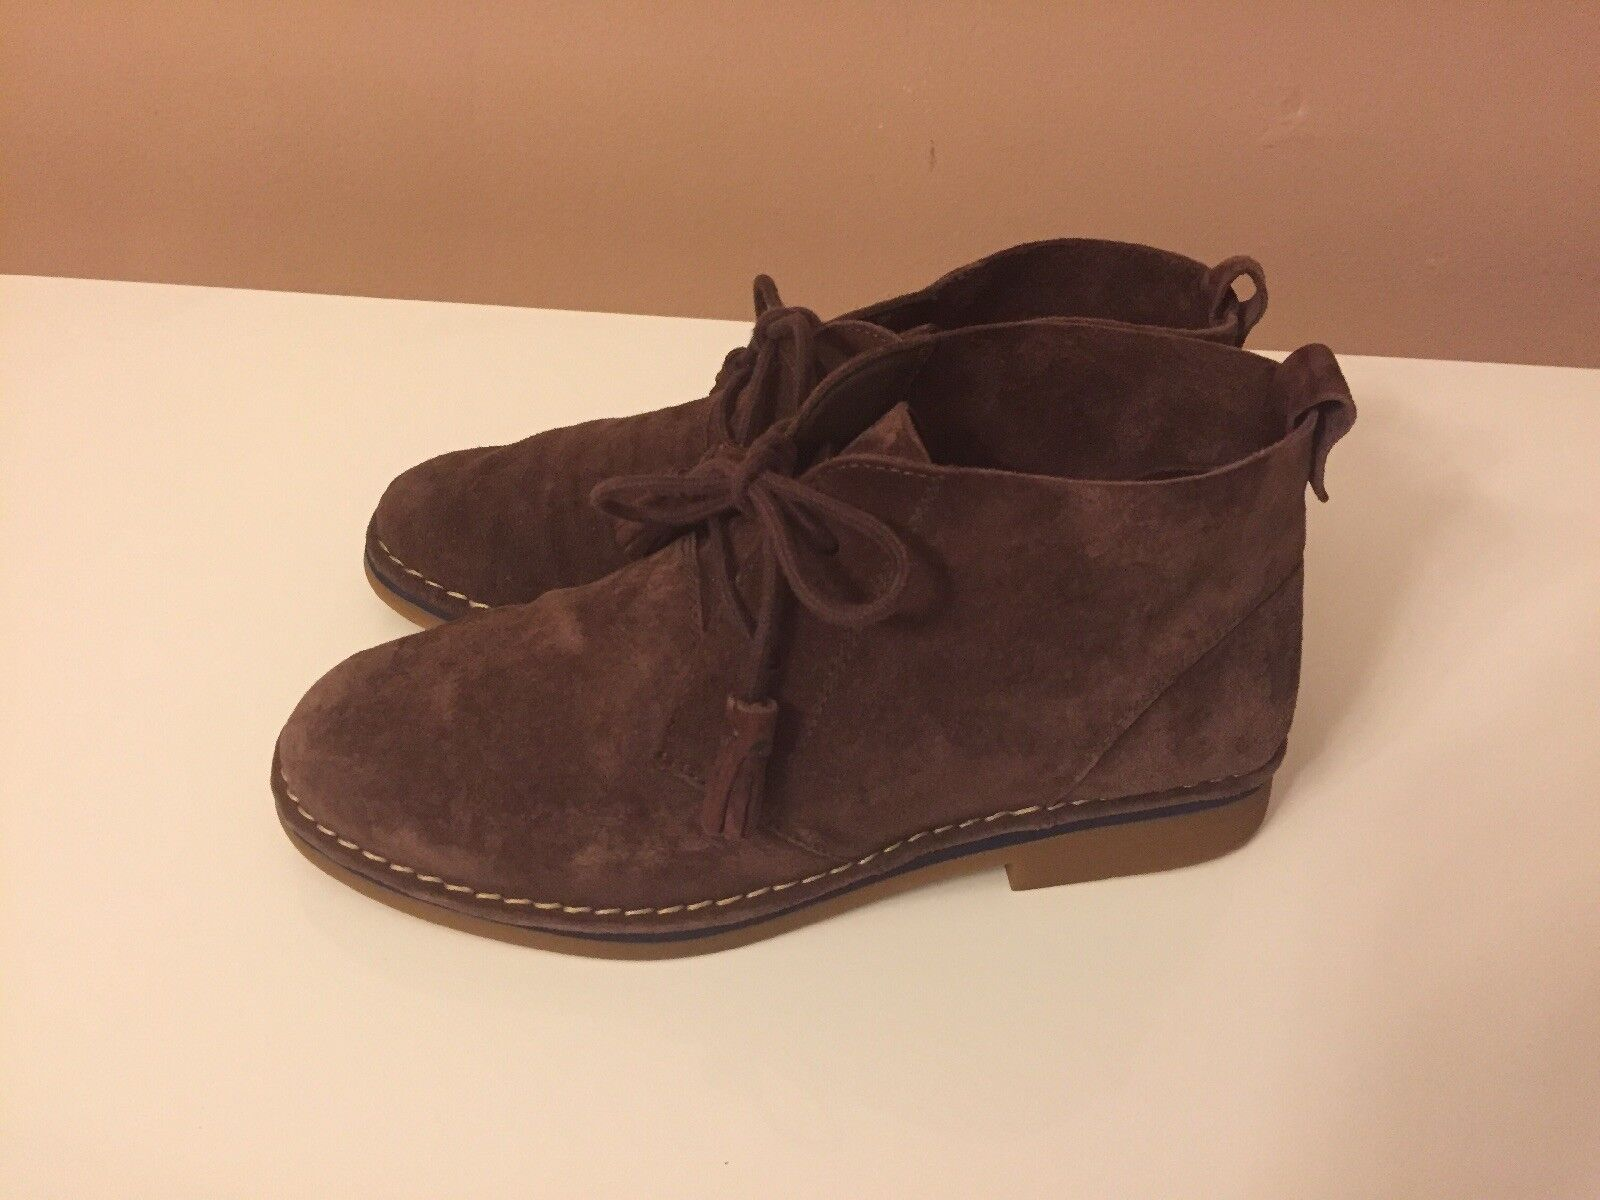 Hush Puppies Women's Boots Cyra Brown Suede Ankle High Size 7.5 M New